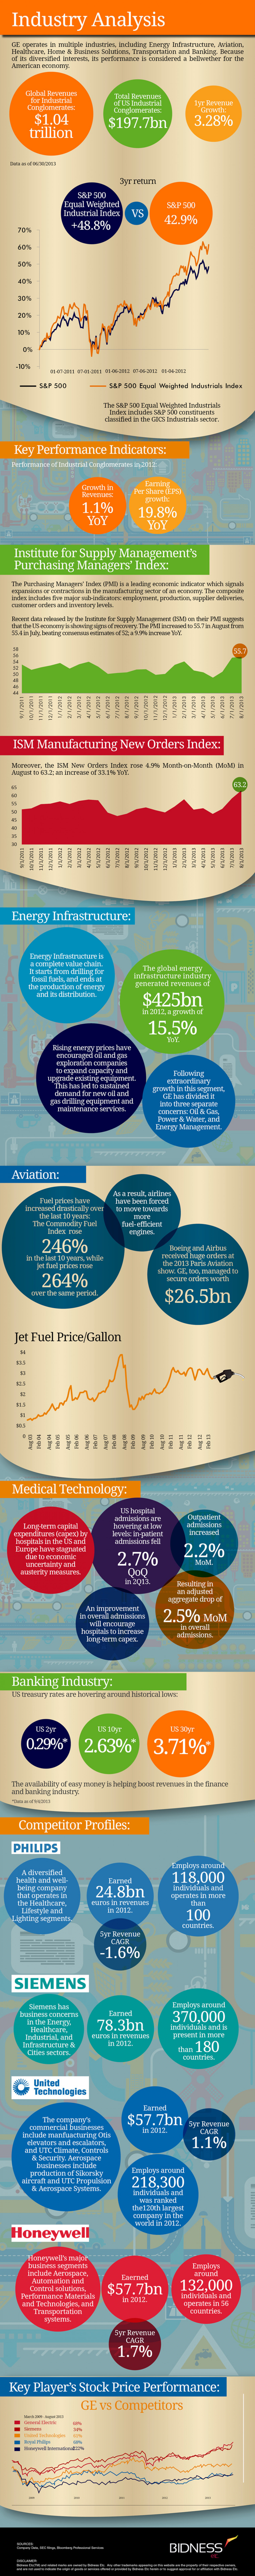 GE Industry Analysis - Bidnessetc Infographic